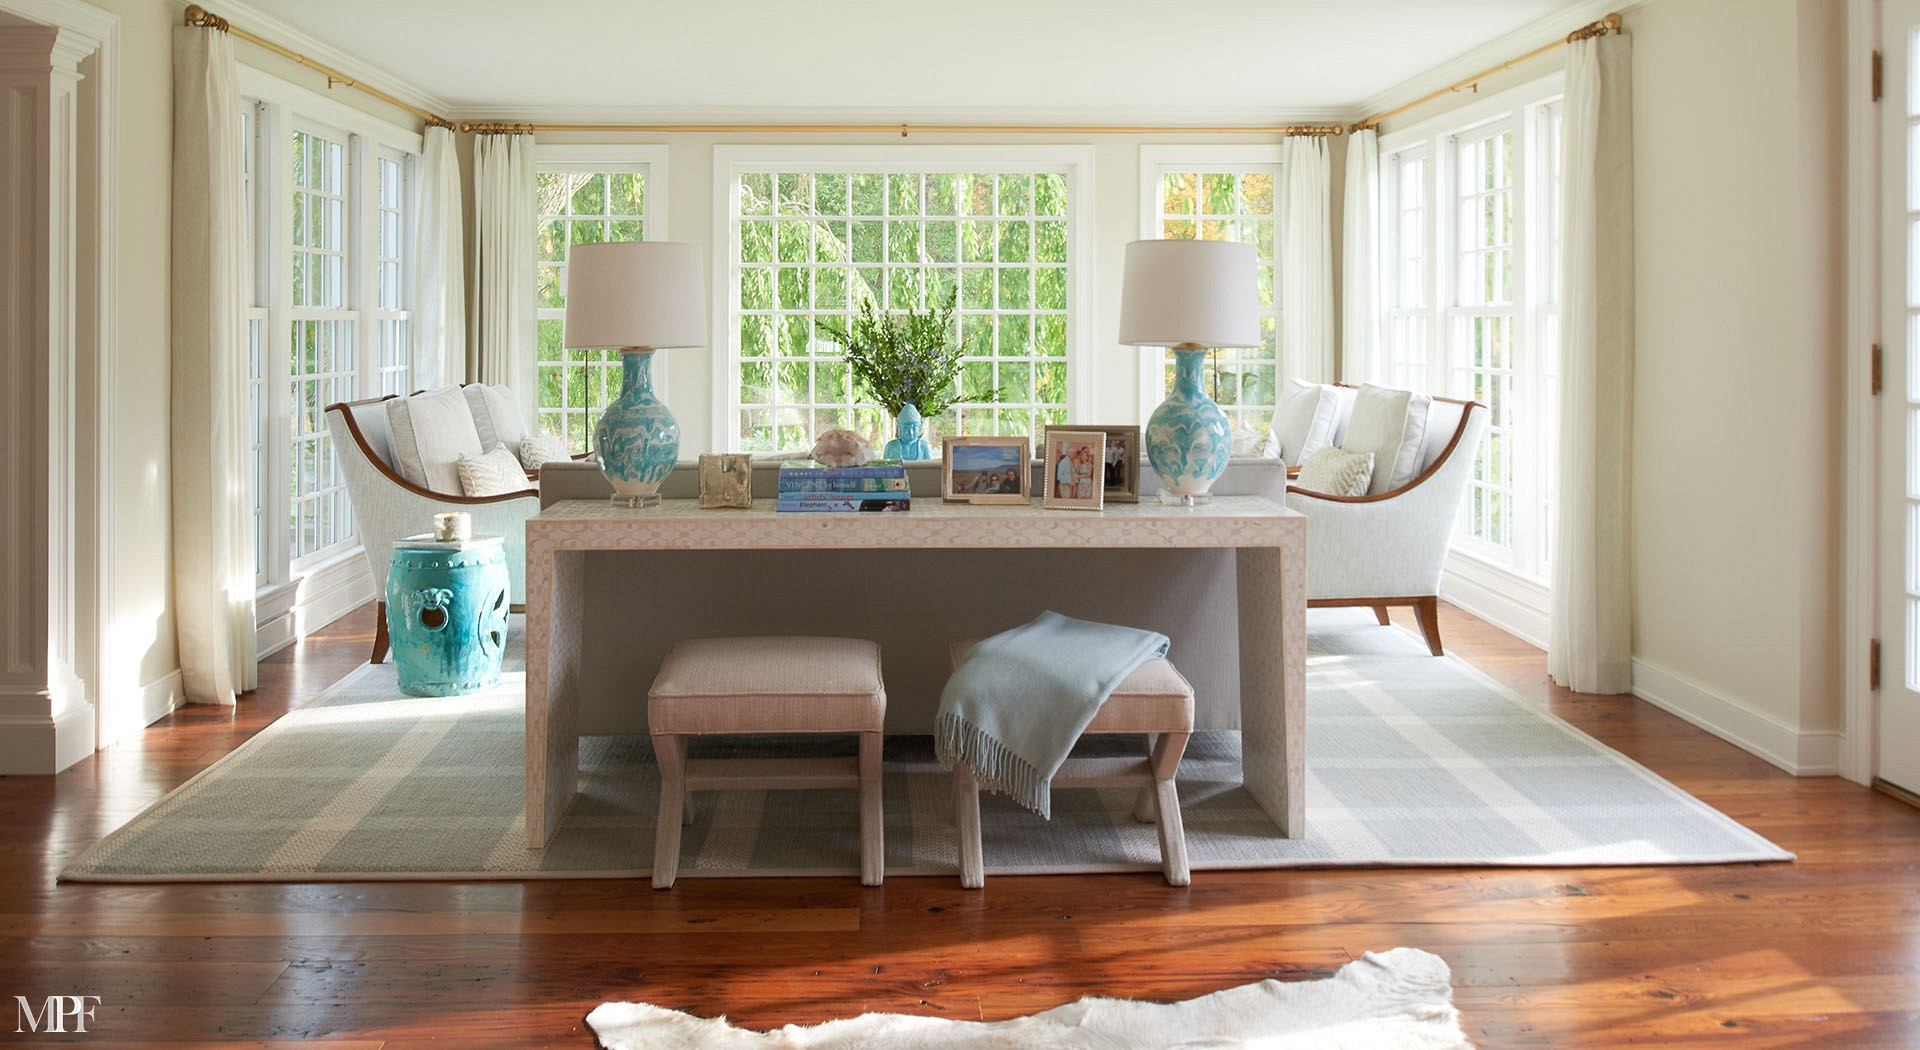 Private Fairfield Residence Mark Finlay Interiors.jpg